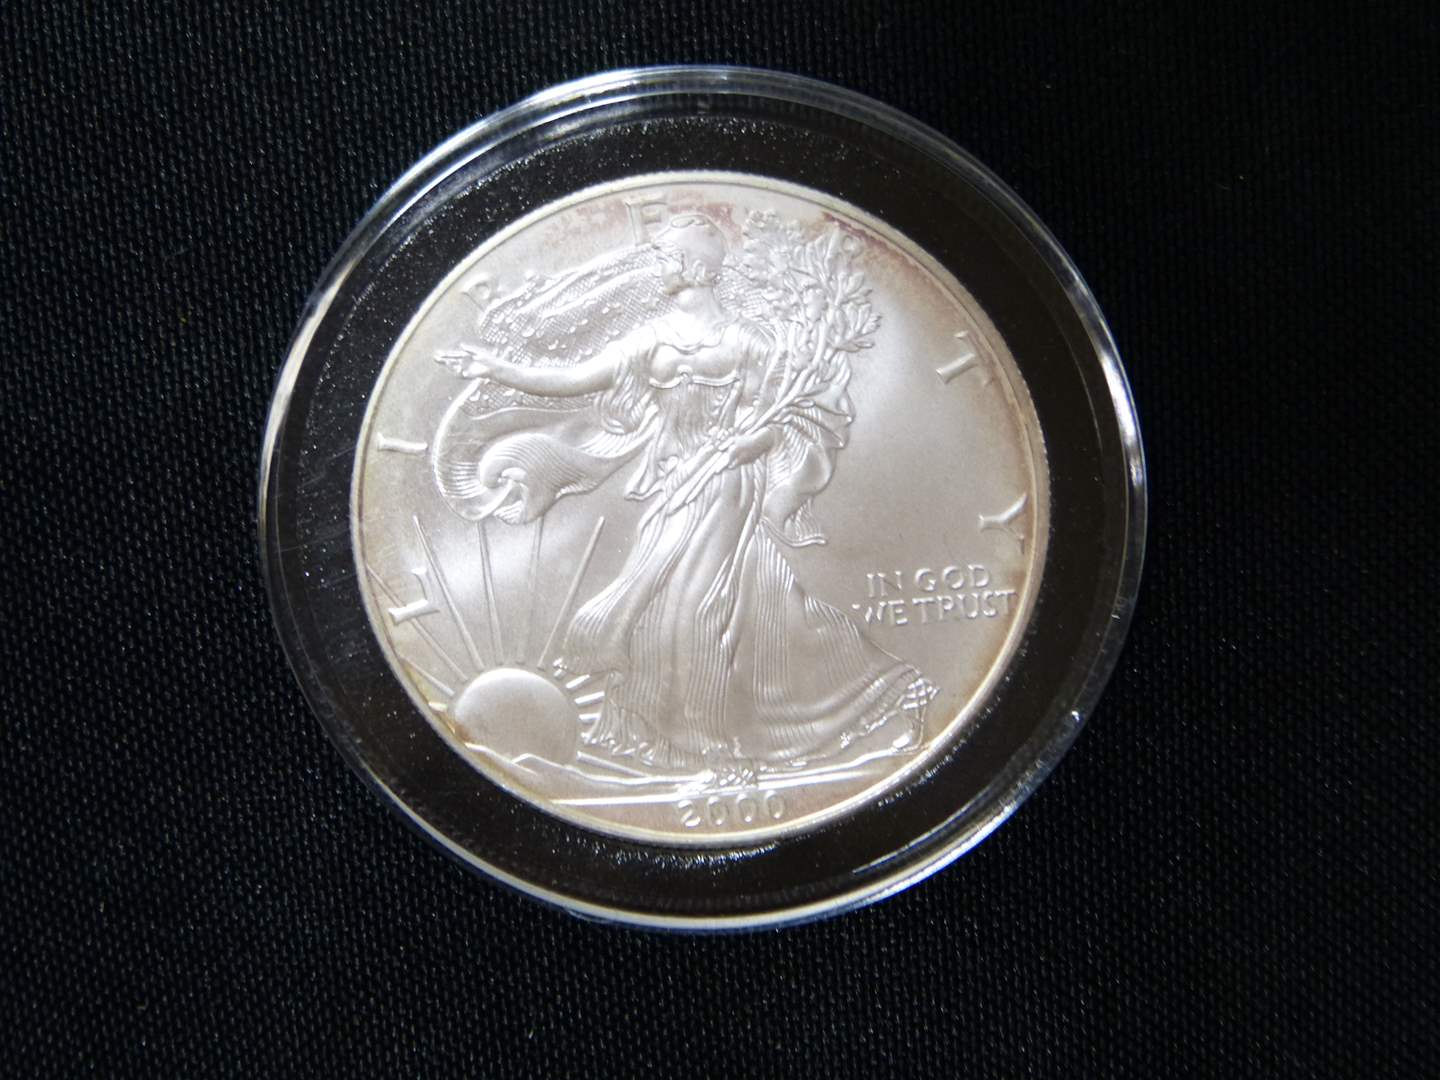 Lot # 3  2000 .999 One Ounce Eagle uncirculated  condition w/protective case (main image)